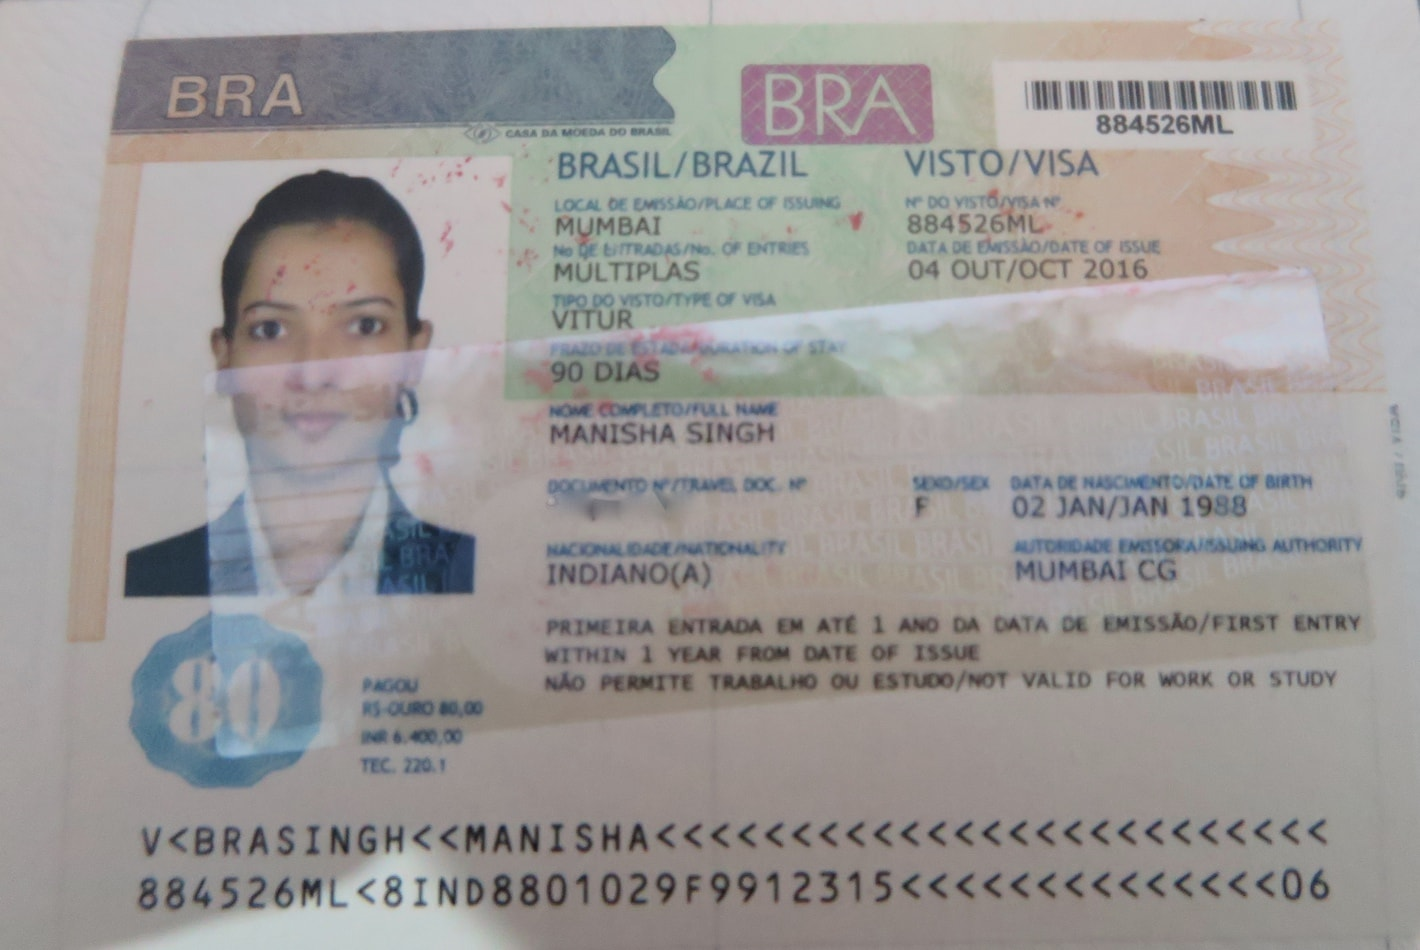 Brazil visa with a woman's image on the left hand side